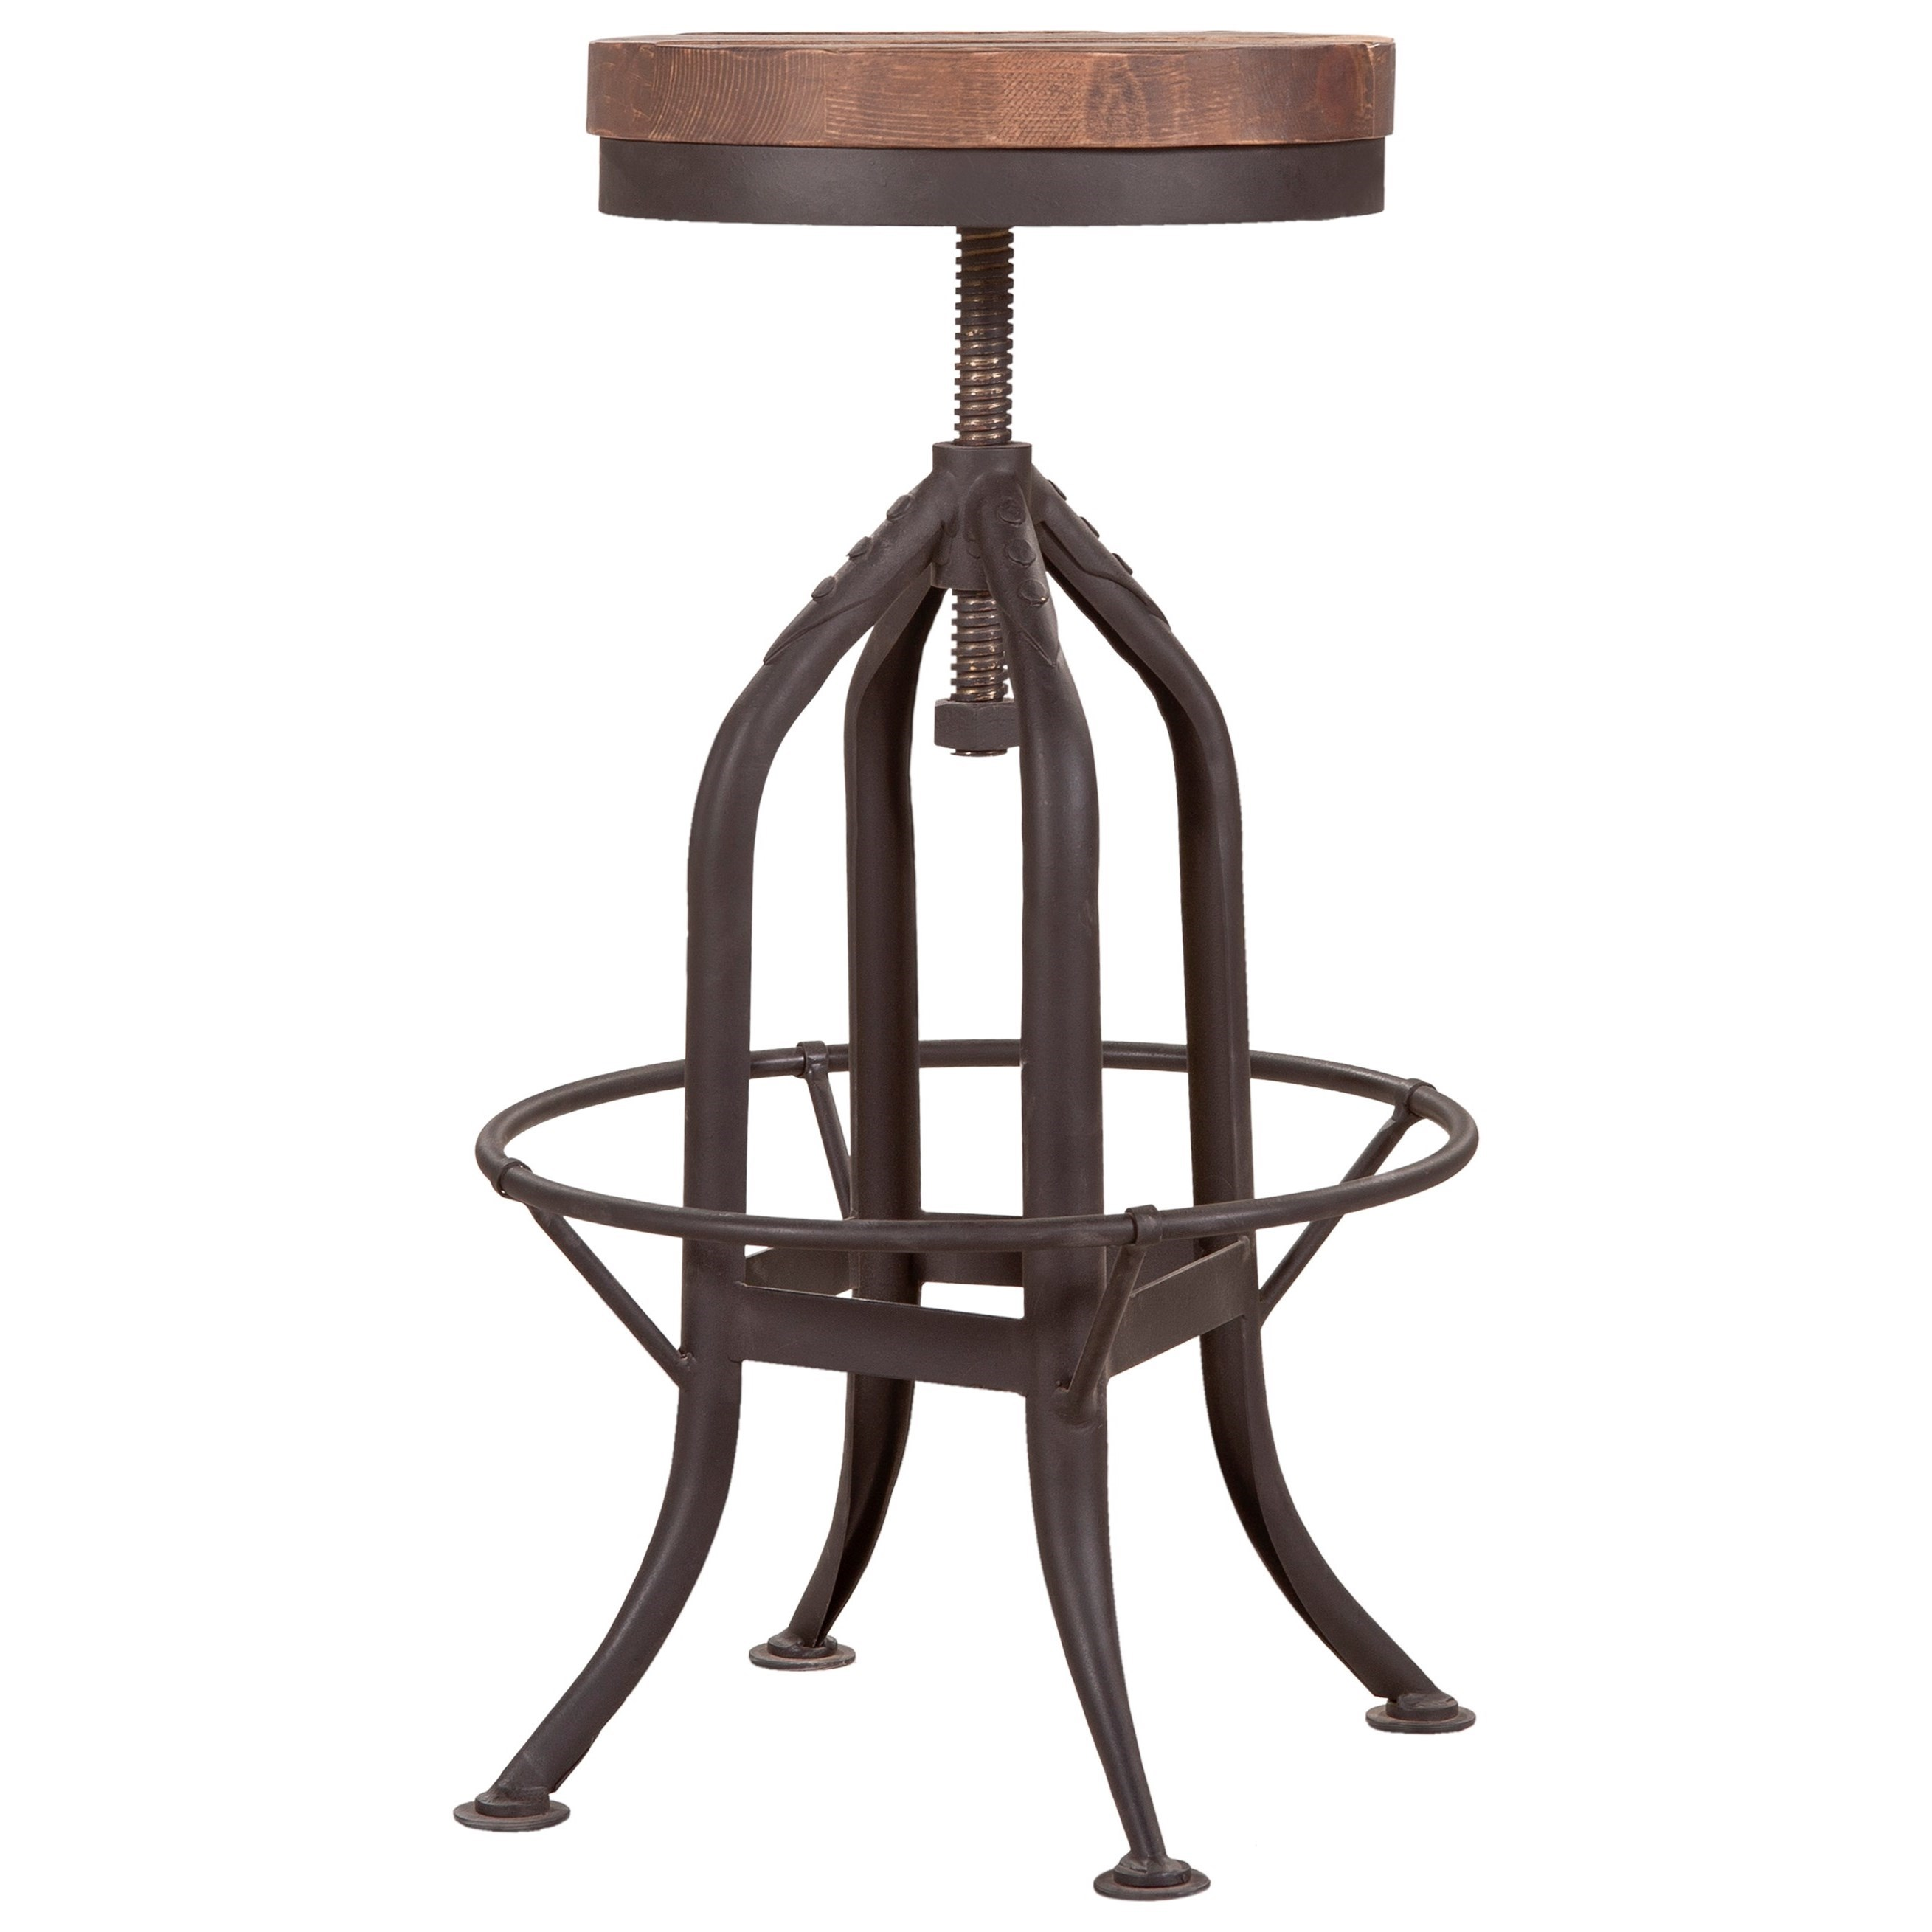 Brut Rustic Industrial Adjustable Barstool by Moe's Home Collection at Stoney Creek Furniture